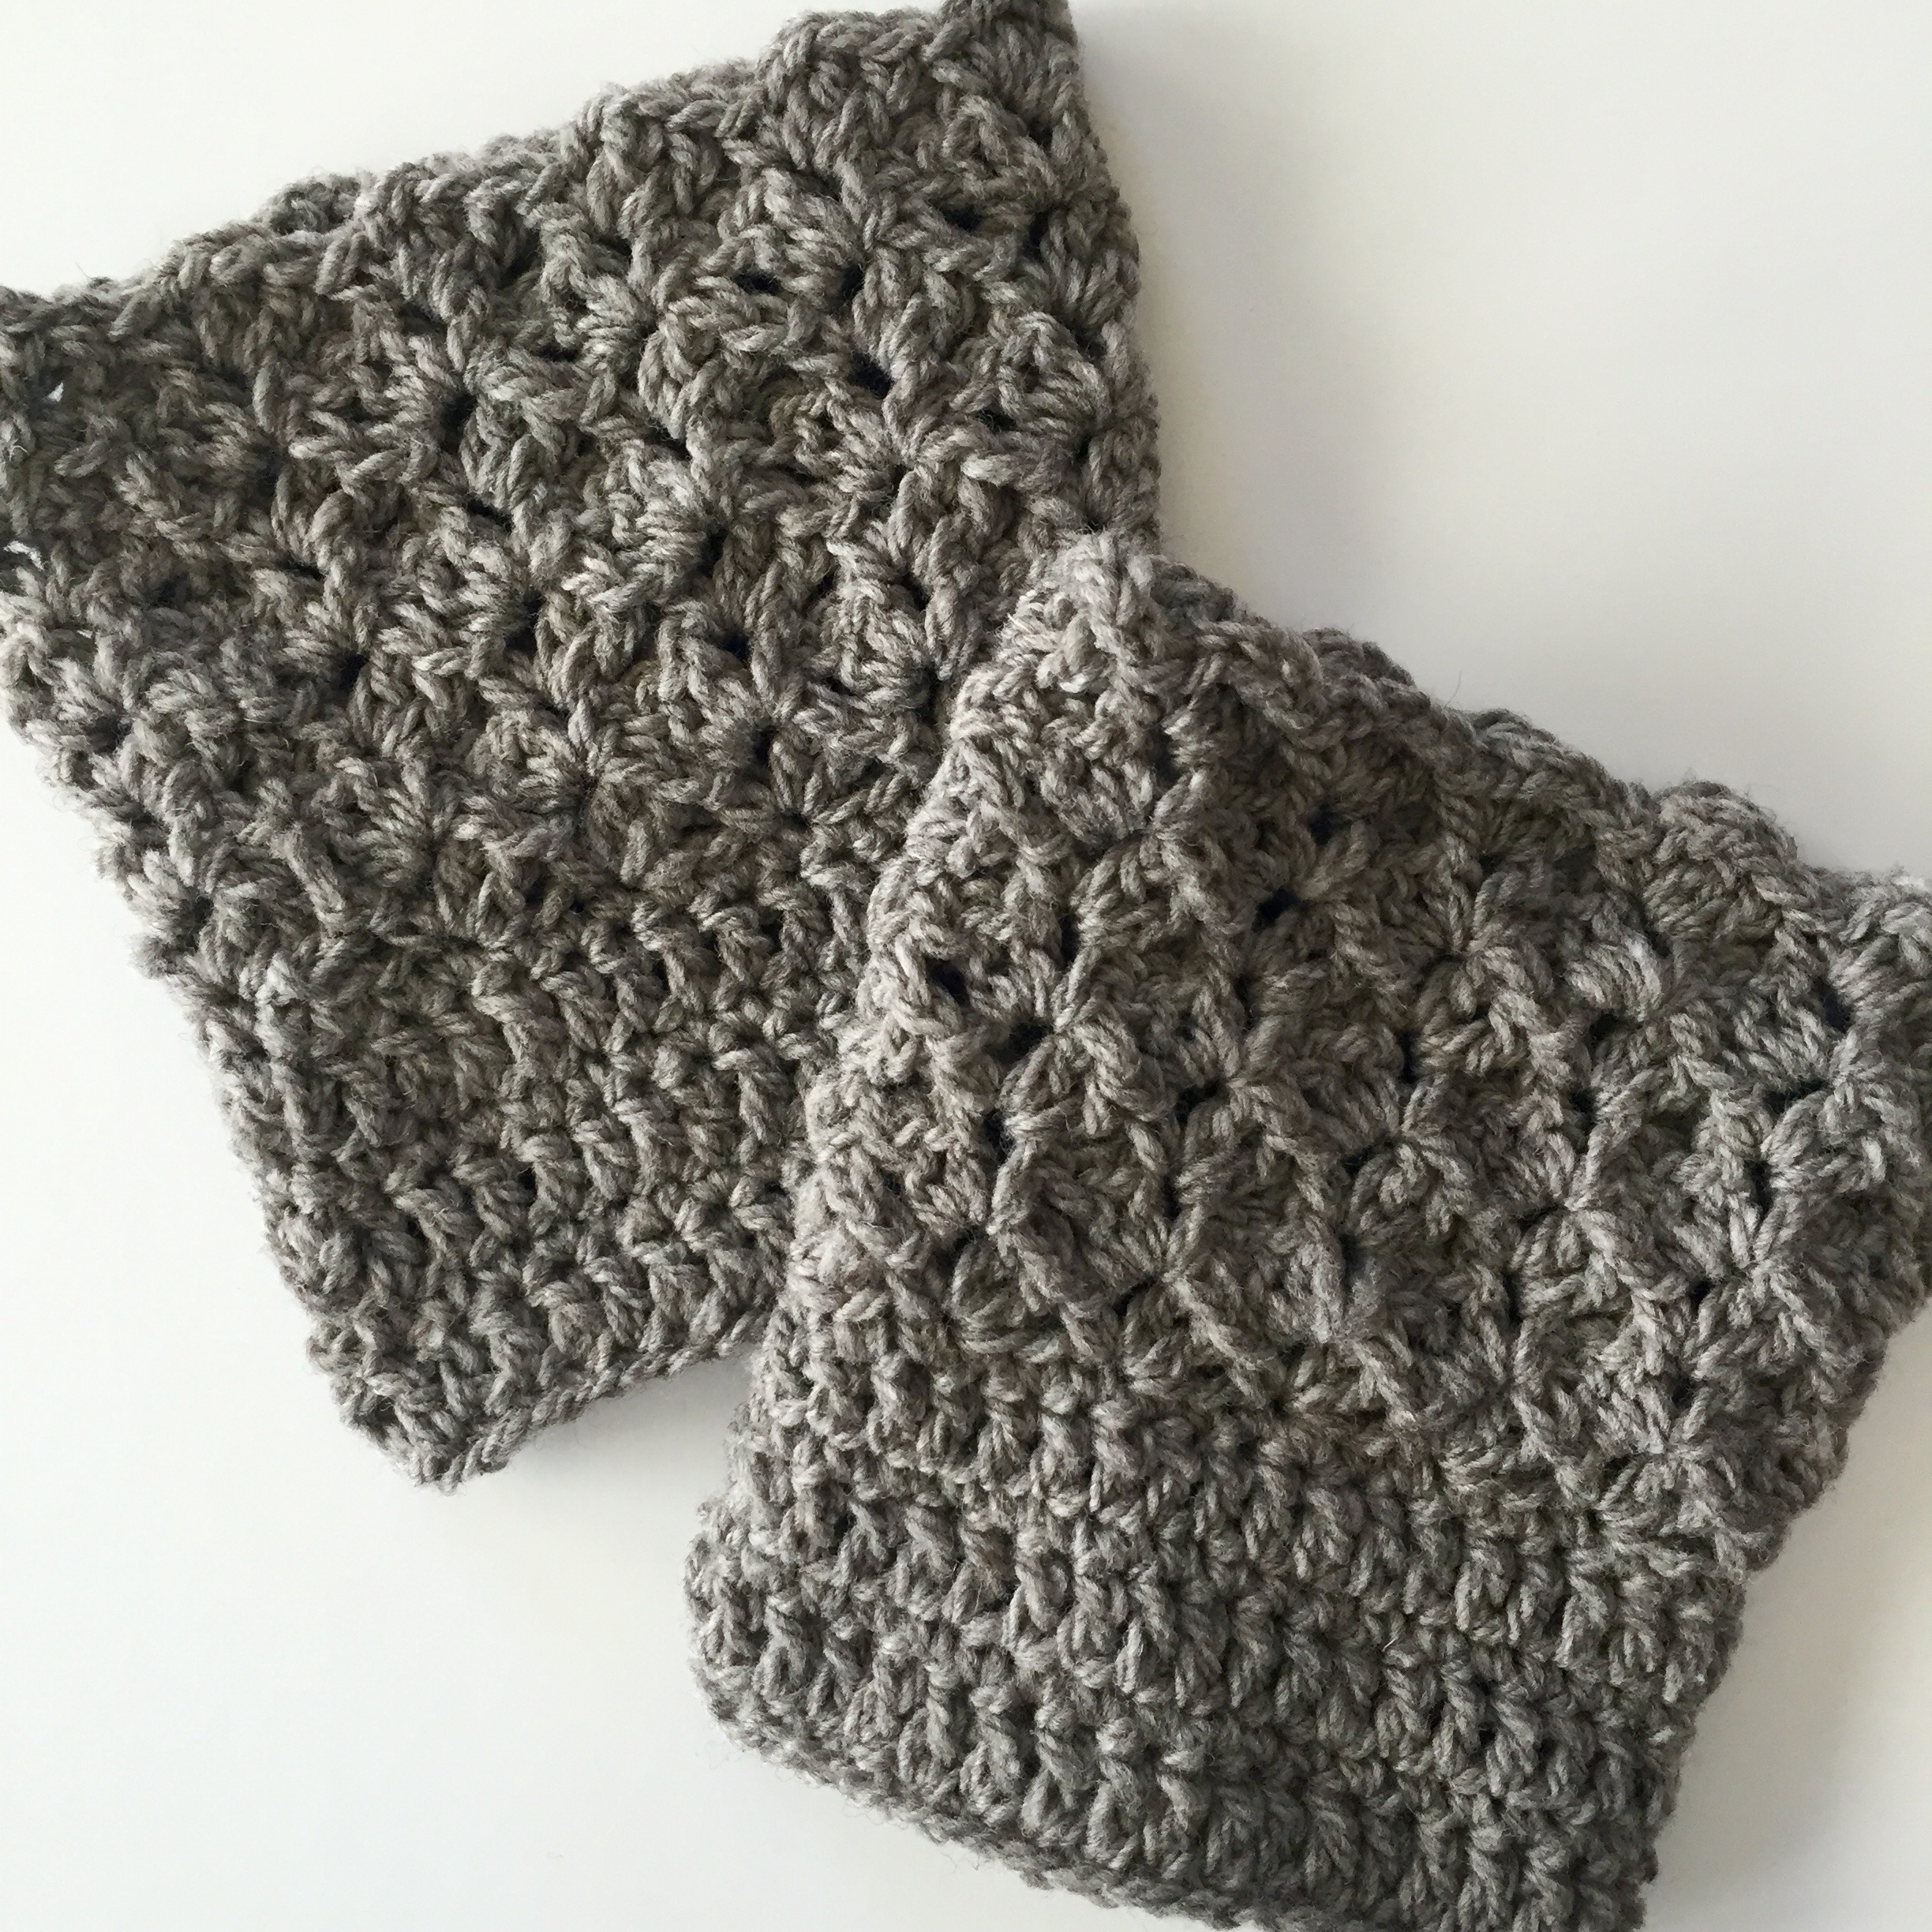 Crochet Boot Cuffs With Lace Pattern : Crochet Pattern - Queens Lace Boot Cuffs - Boot Socks for ...